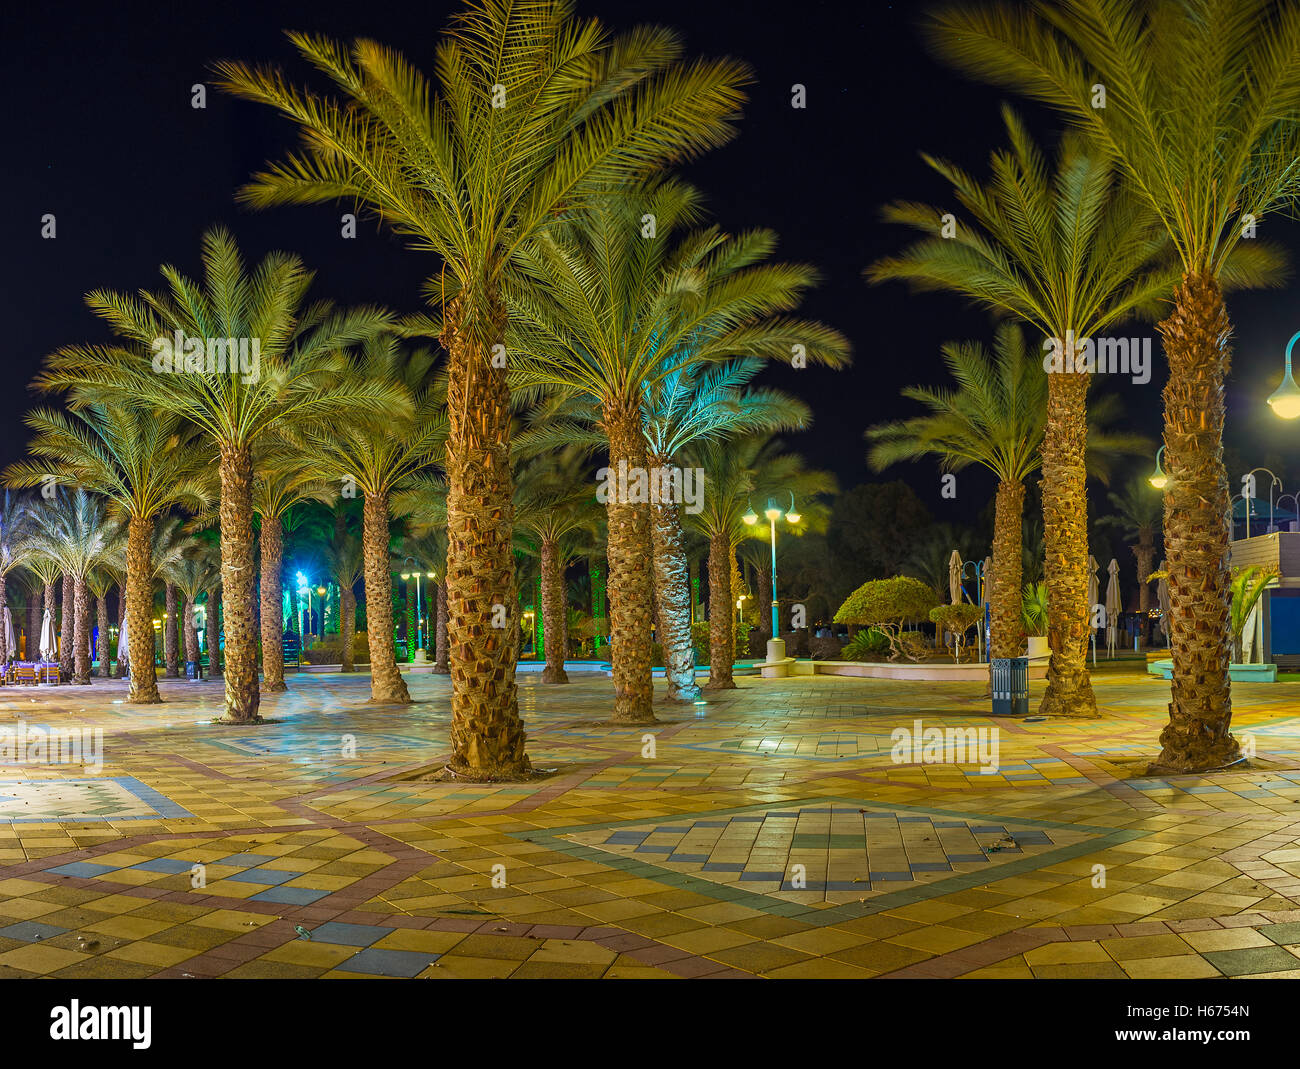 The night palm garden in central promenade of Eilat, Israel Stock ...